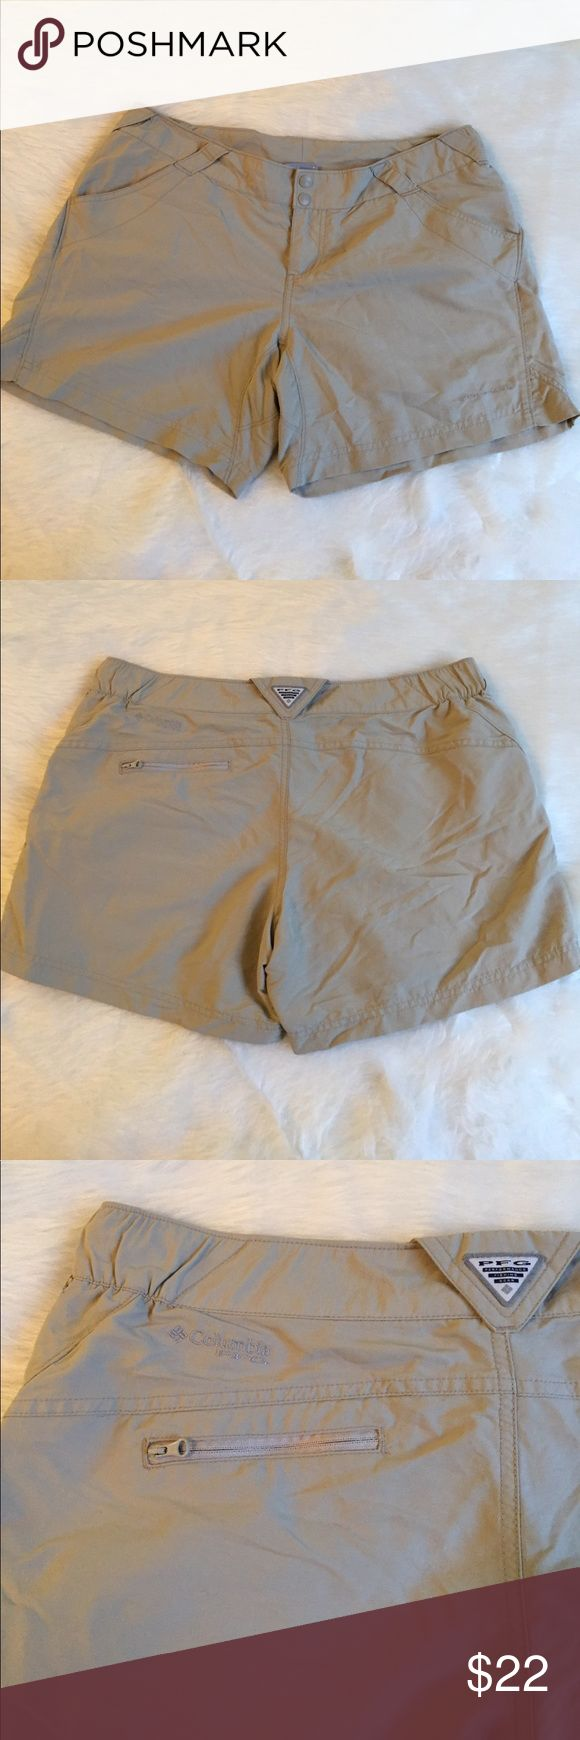 COLOMBIA Fishing Shorts Women's size large, used but in good condition Columbia Shorts